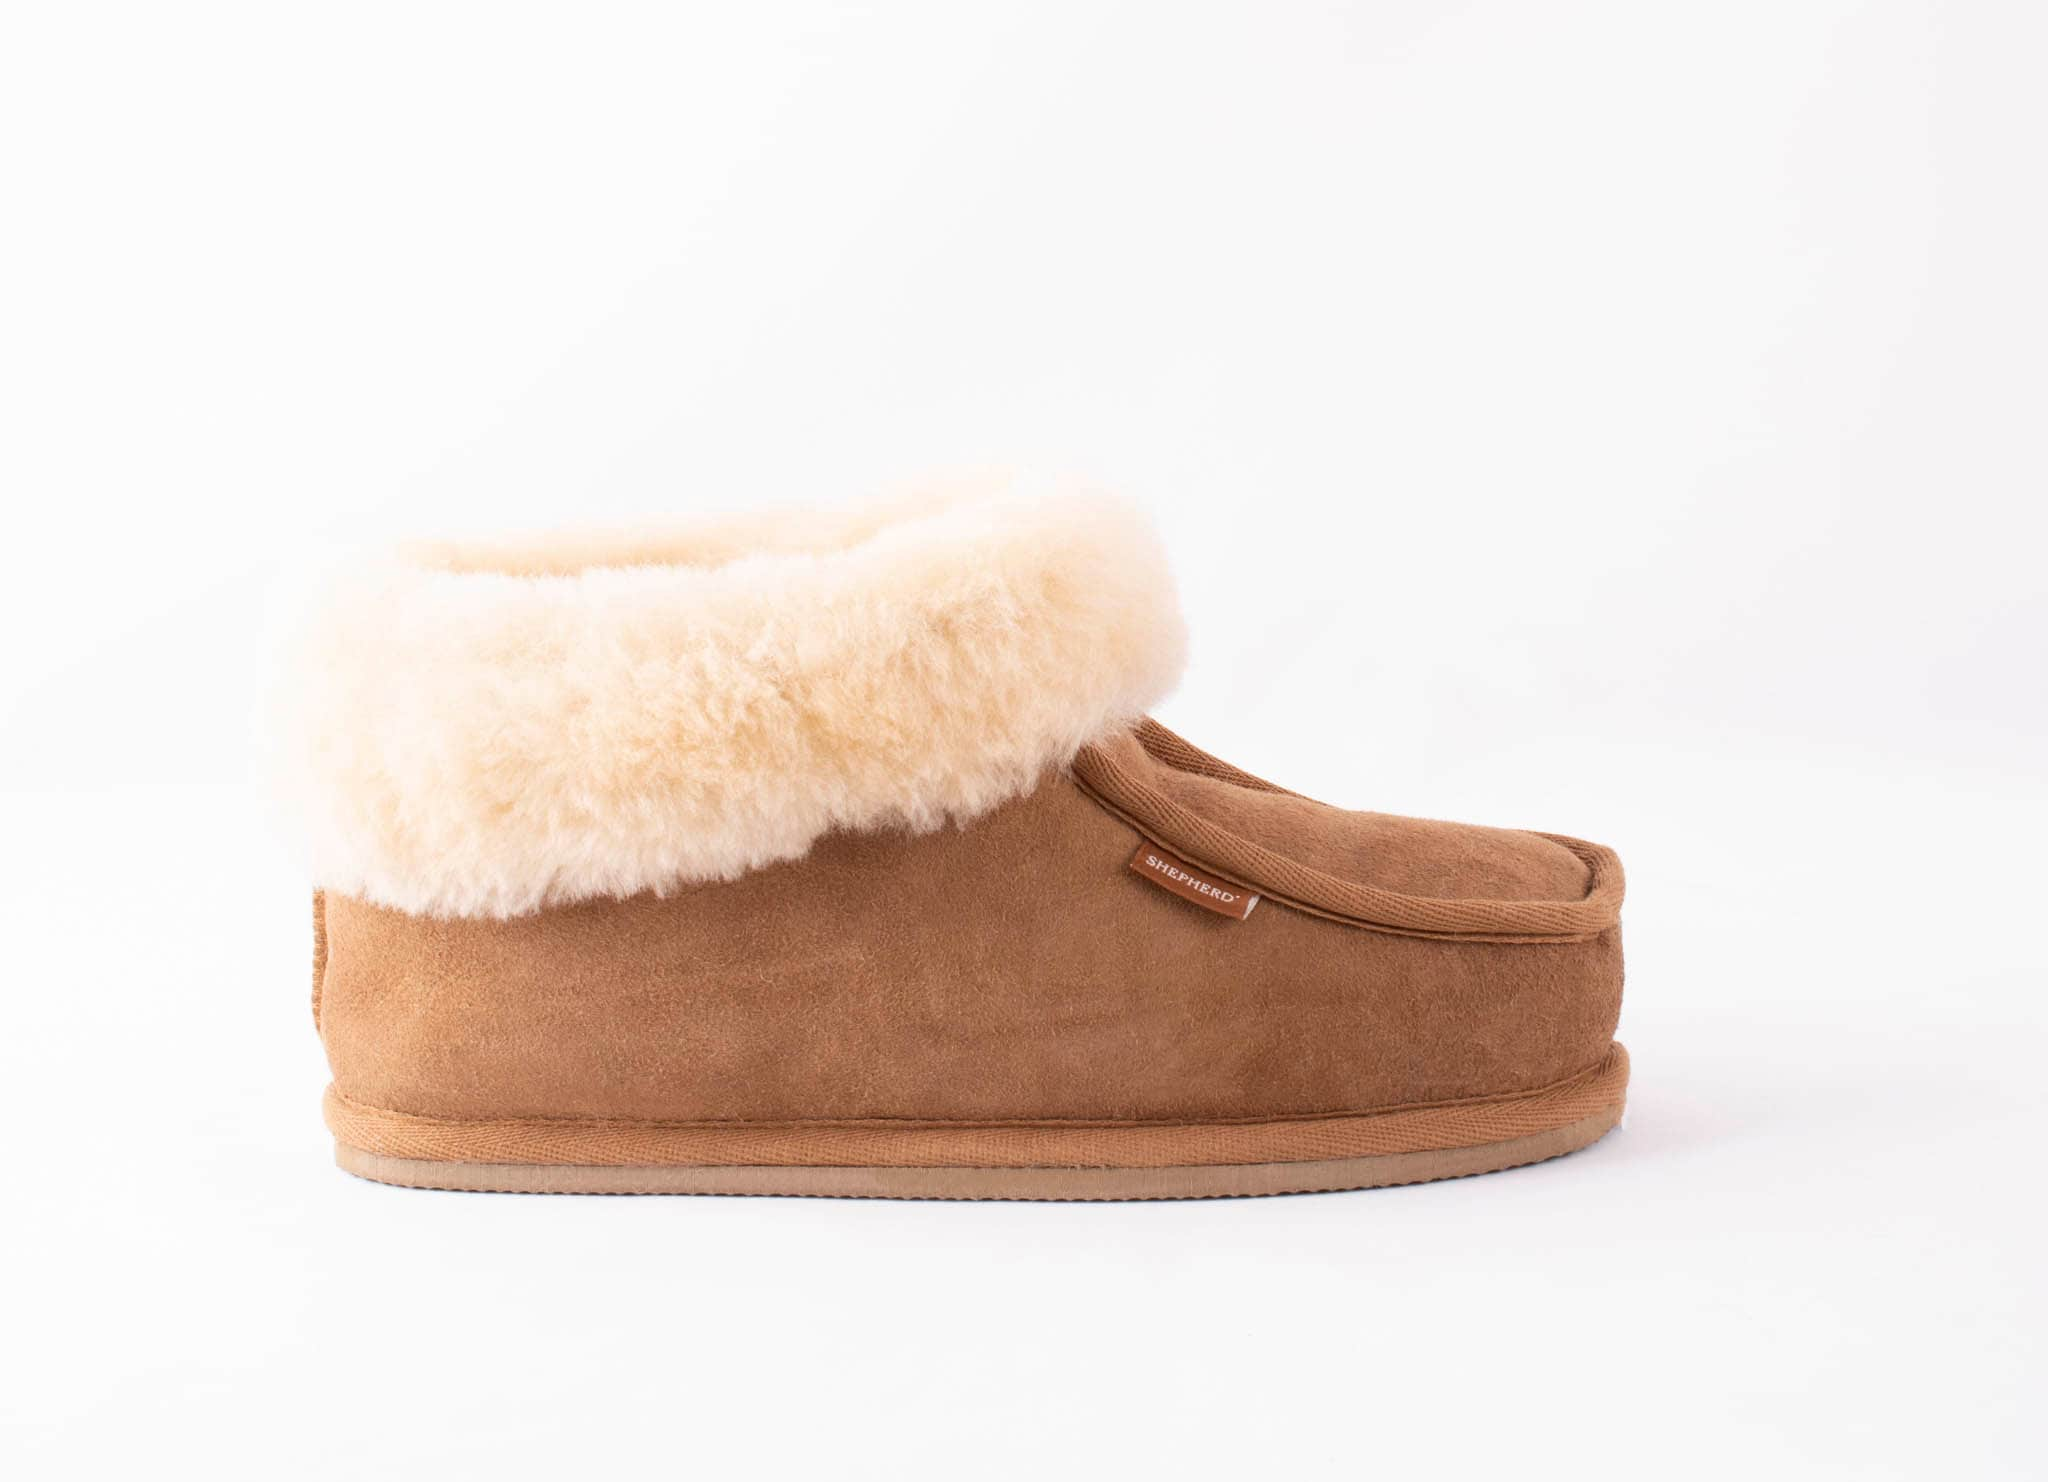 Lena sheepskin slippers